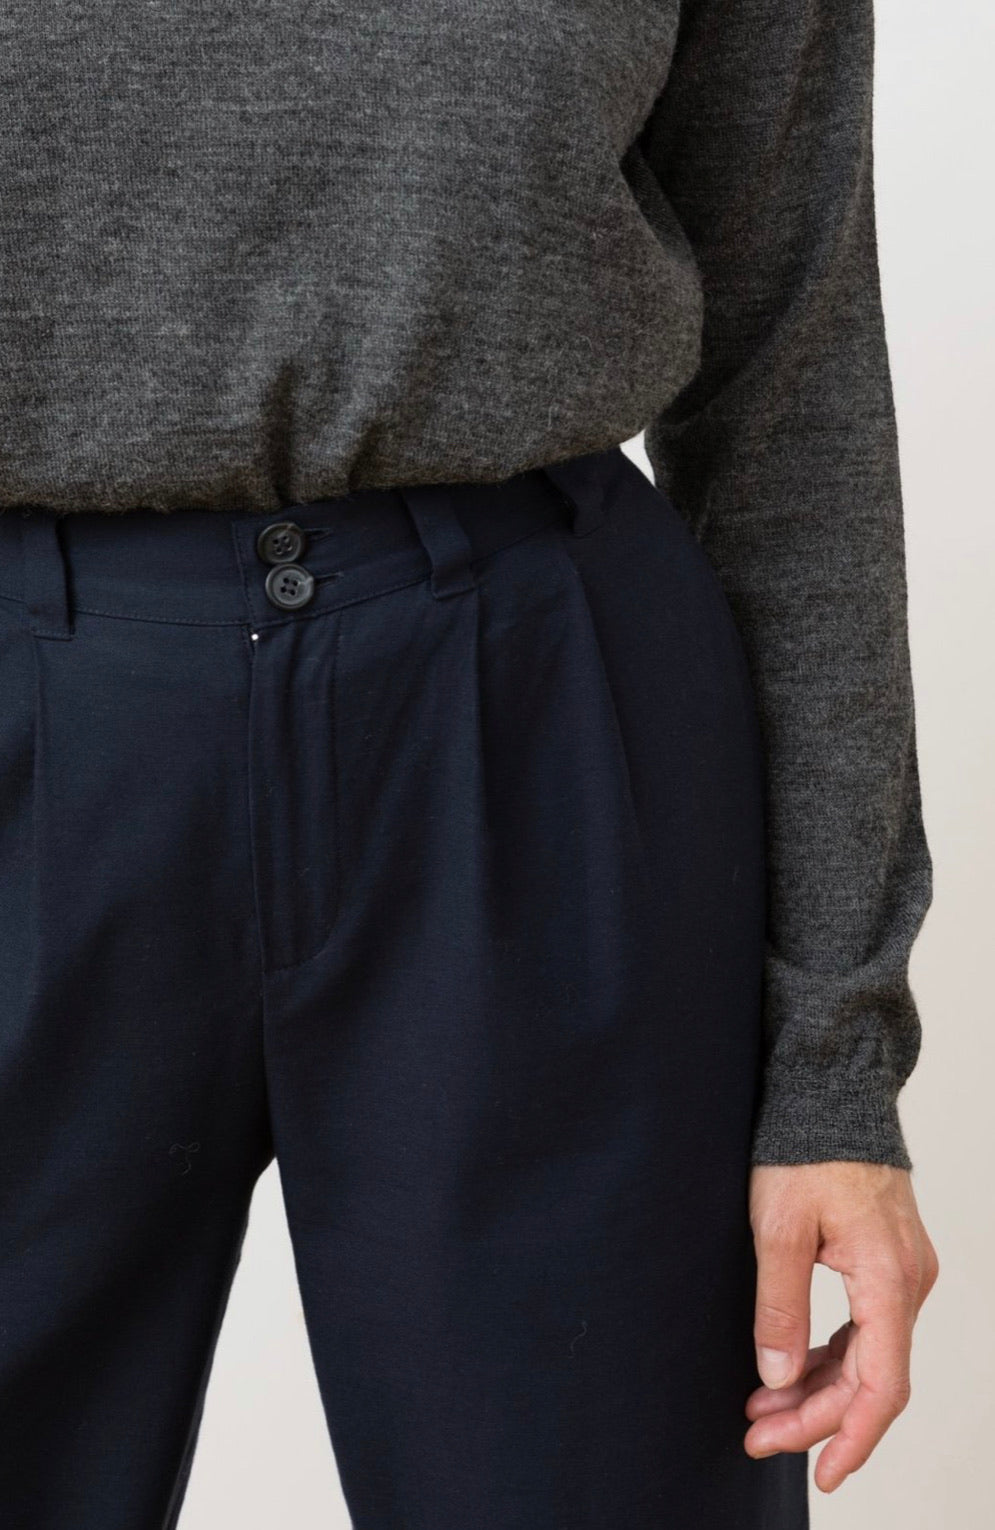 cotton trousers - duoro - navy blue